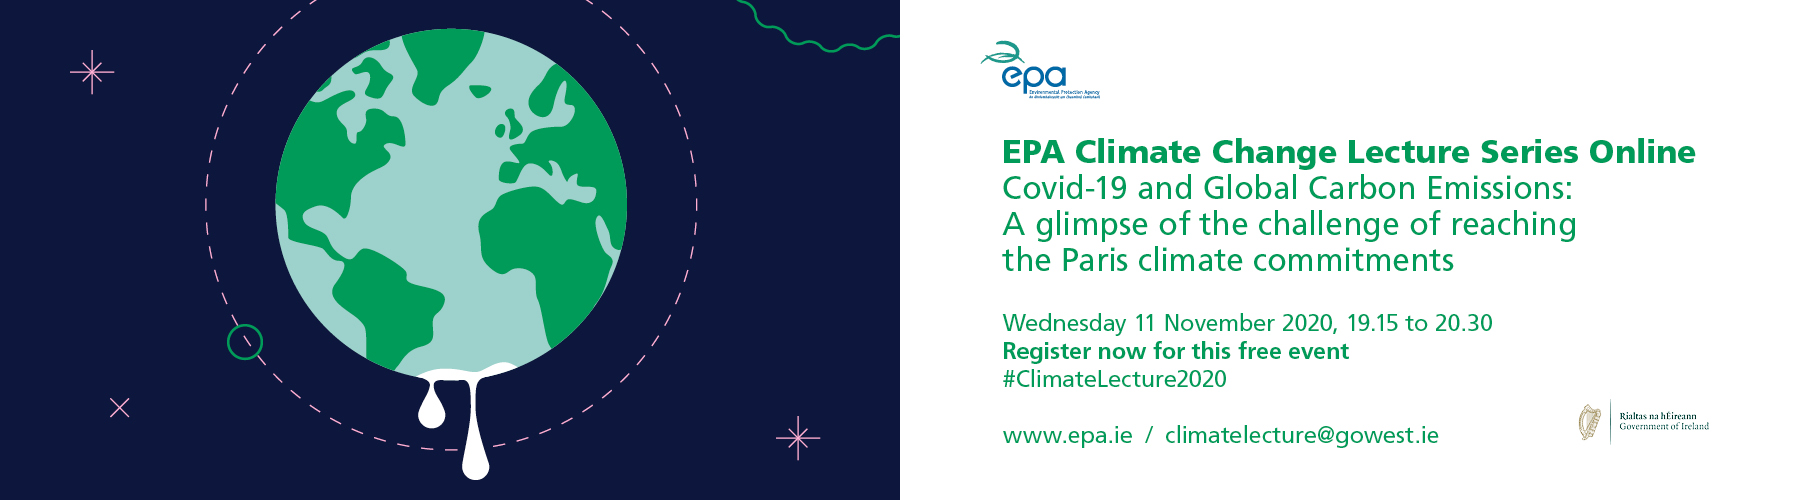 EPA Climate Change Lecture Series